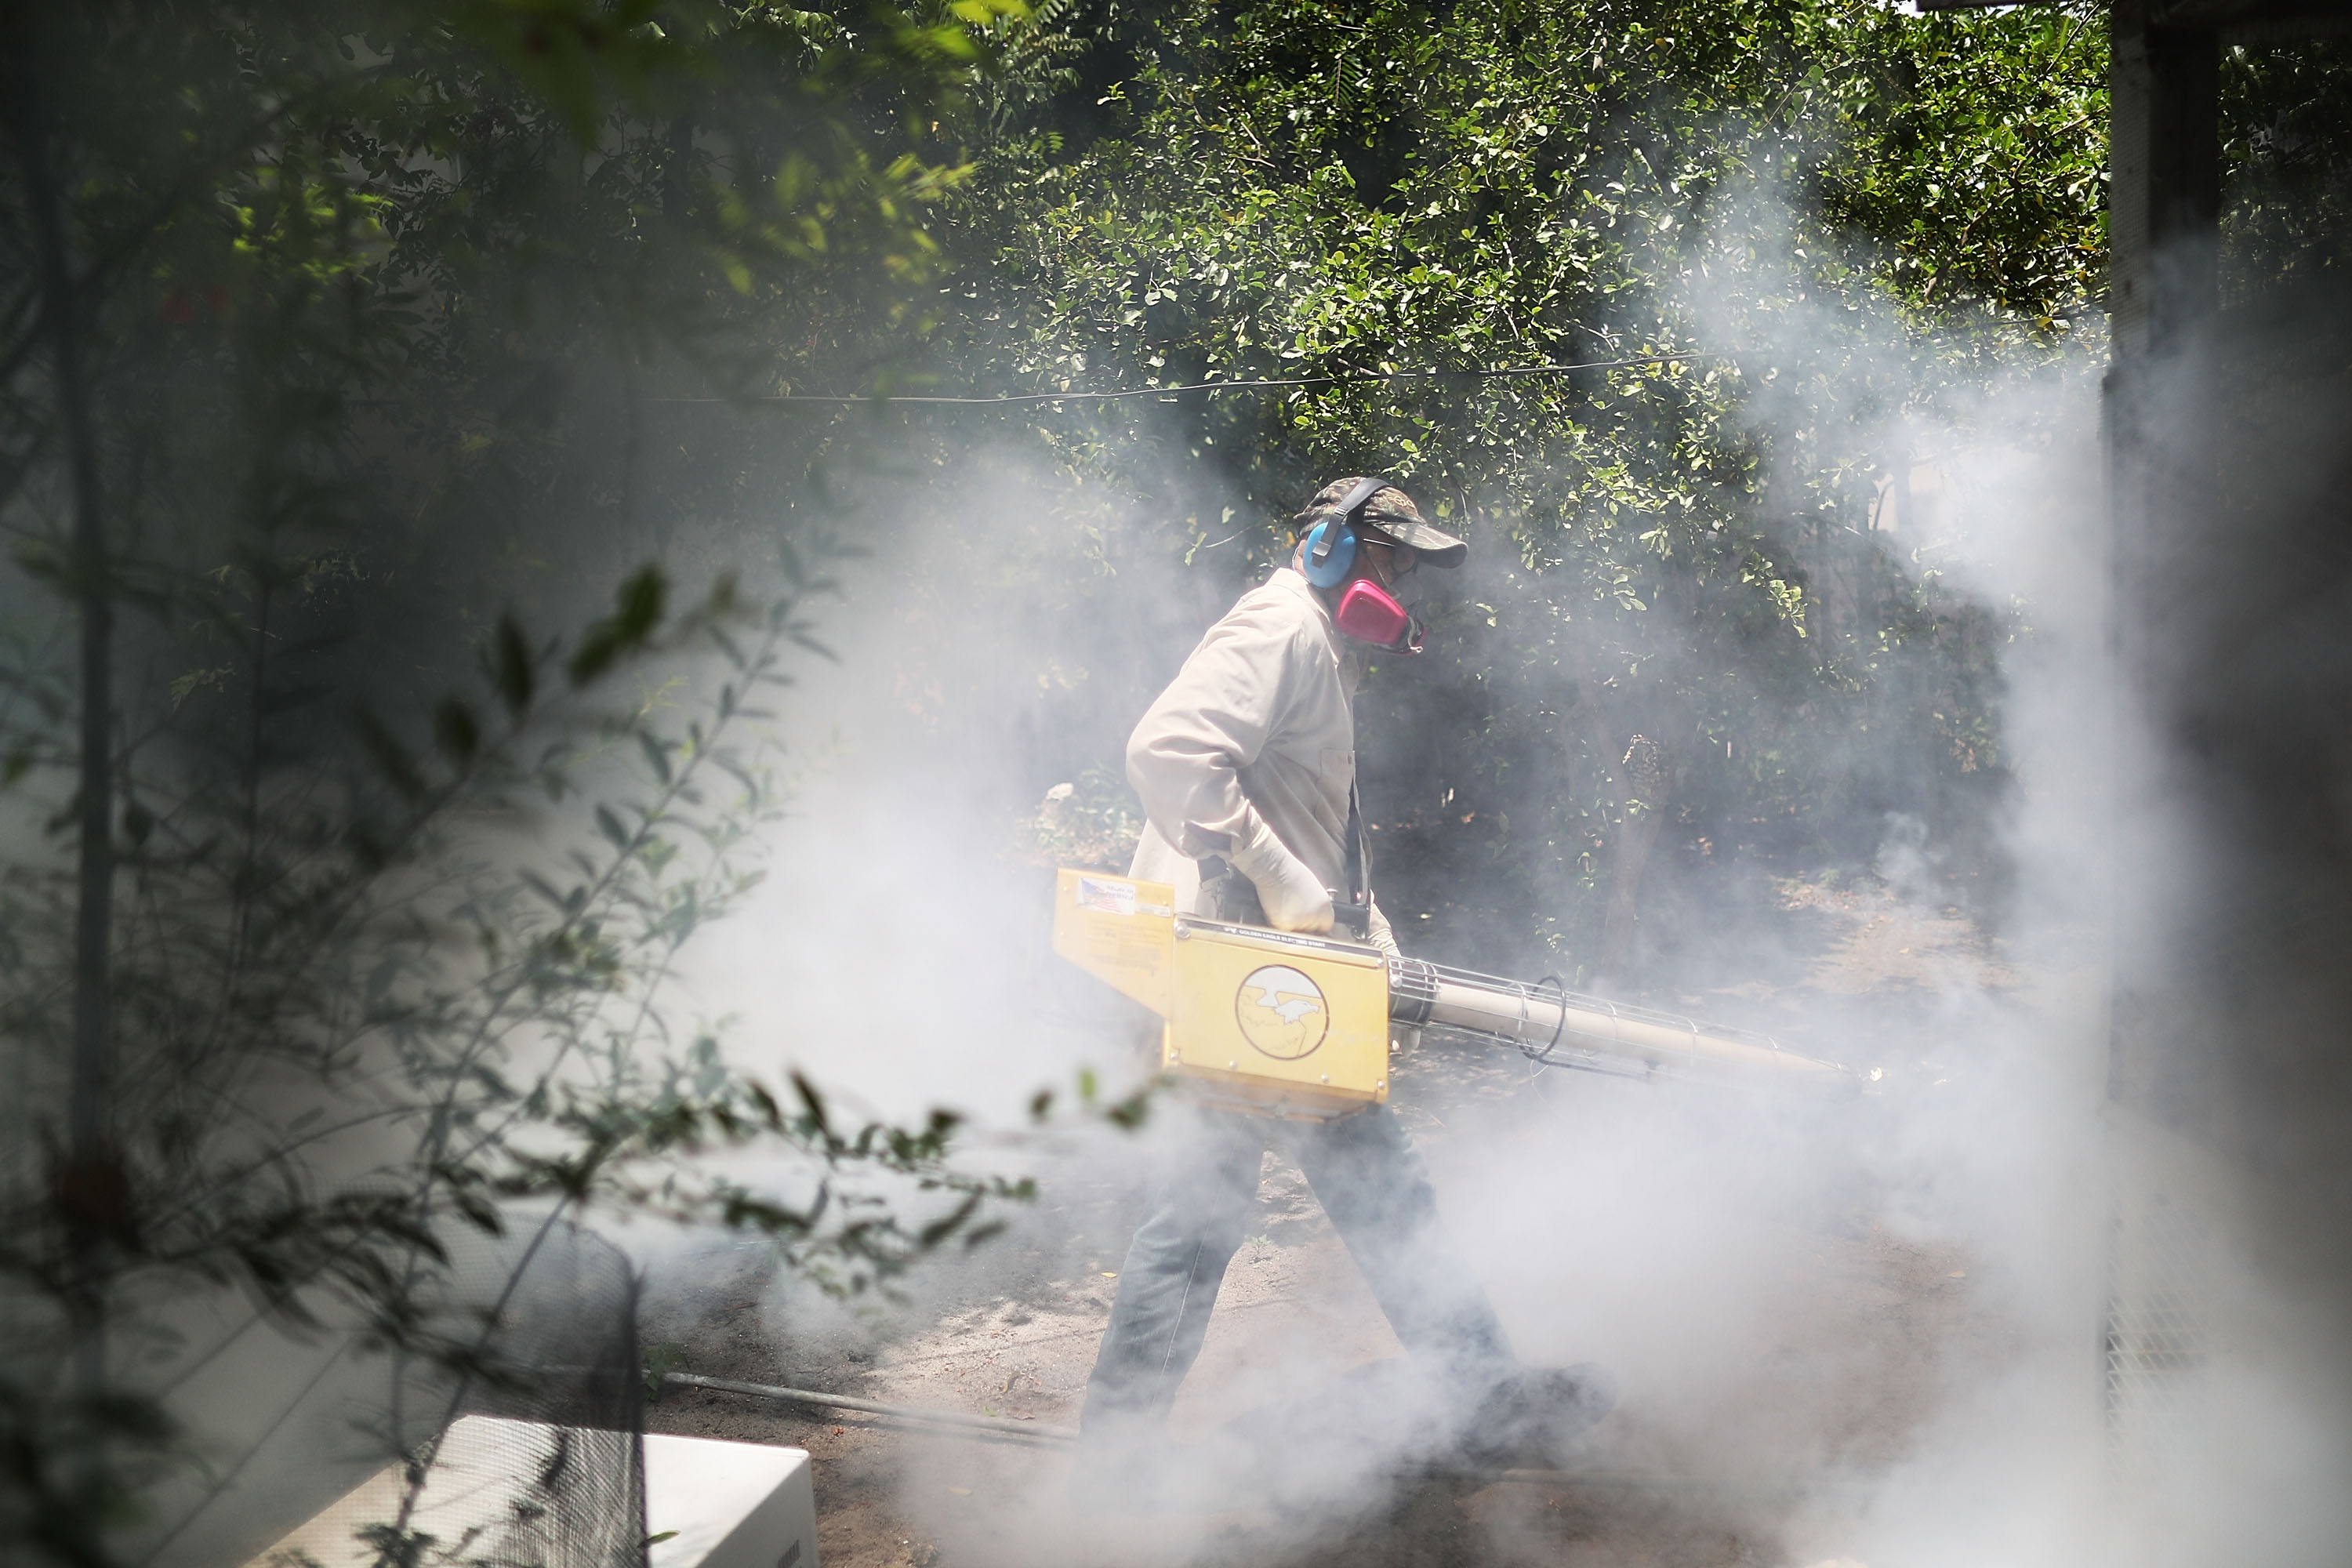 Wynwood, a Miami neighborhood, continues to fight to control the Zika virus outbreak on August 2, 2016.